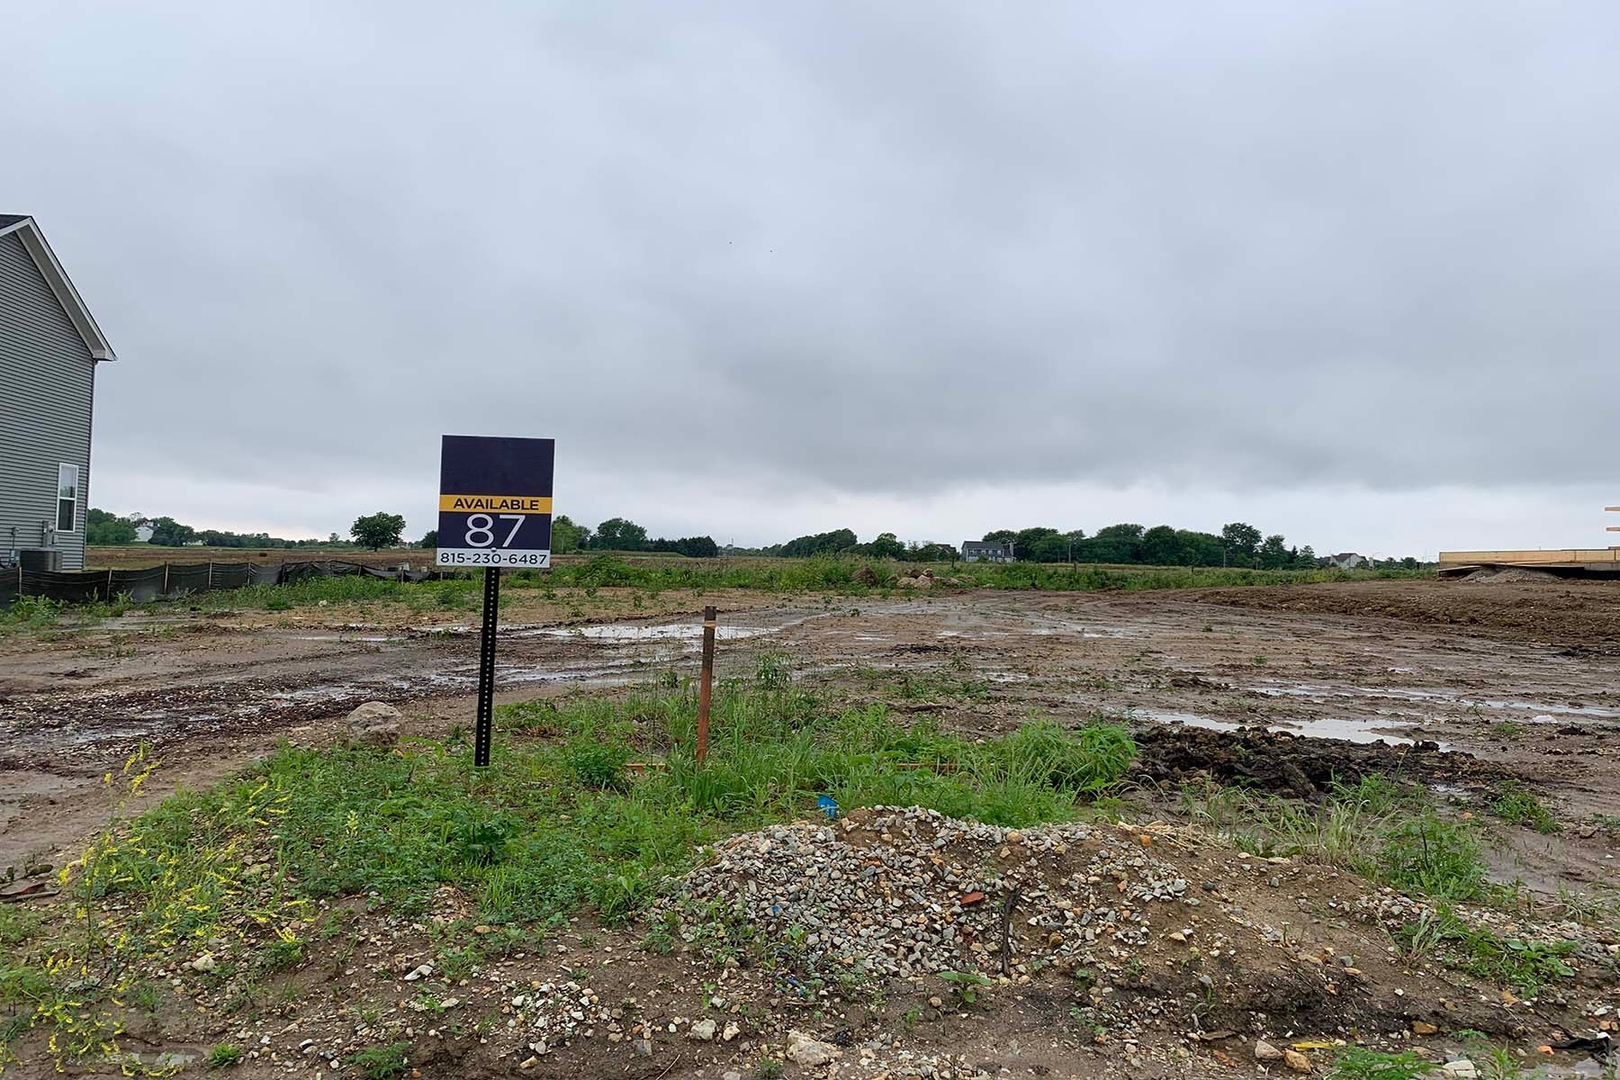 12316 Dublin Lot#87, Plainfield, Illinois, 60585